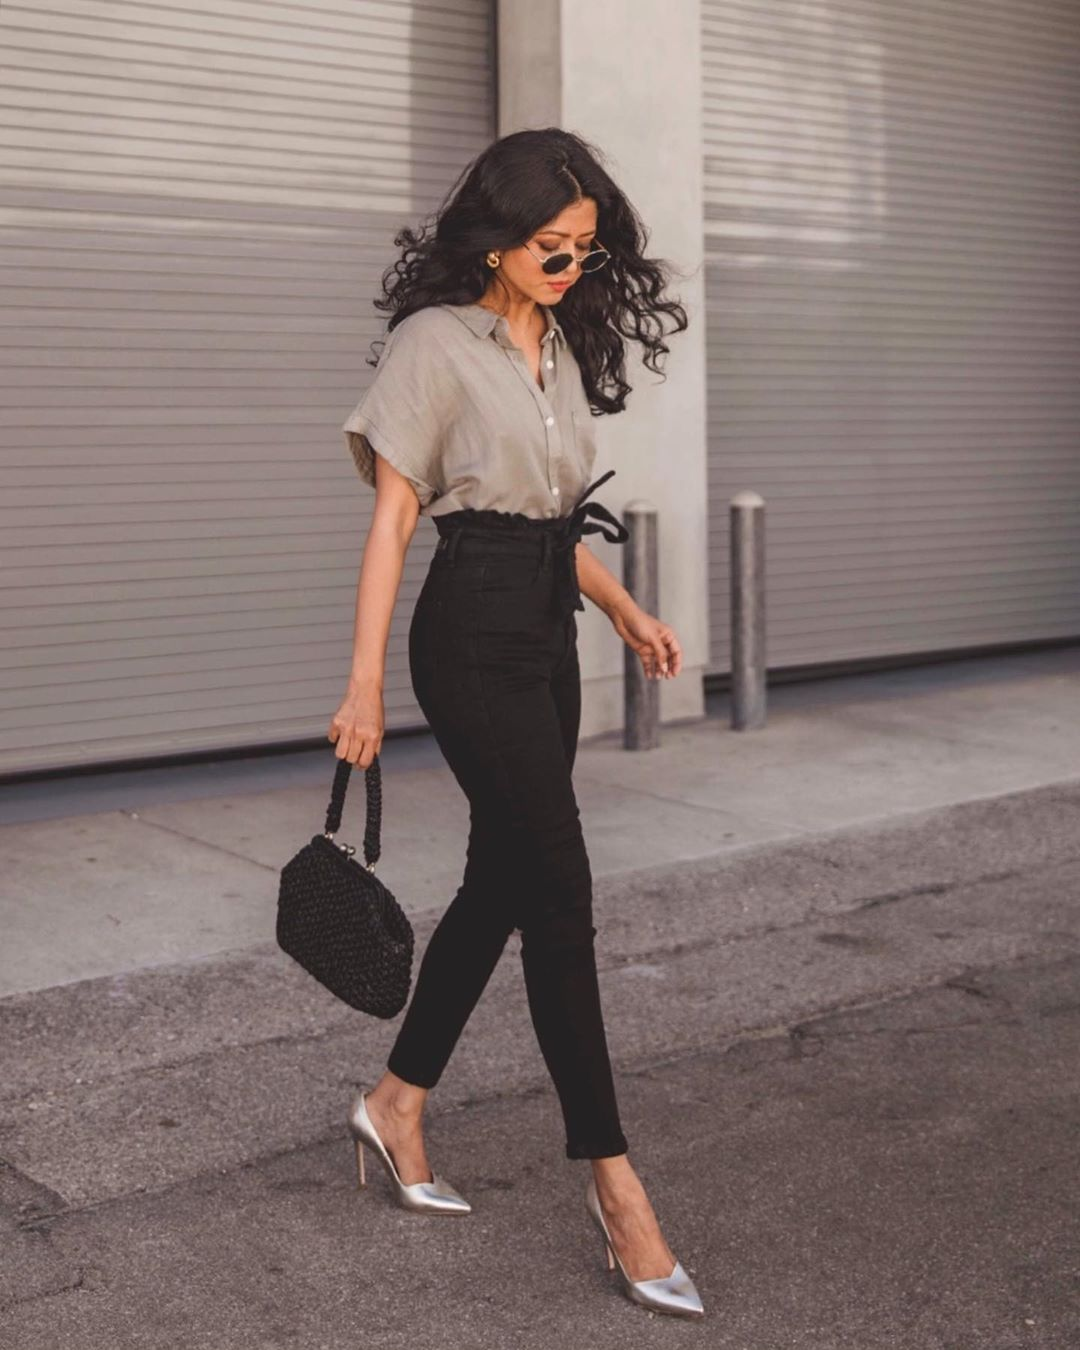 Tie-Waist Pants Are a Spring Trend That We Can't Get Enough Of